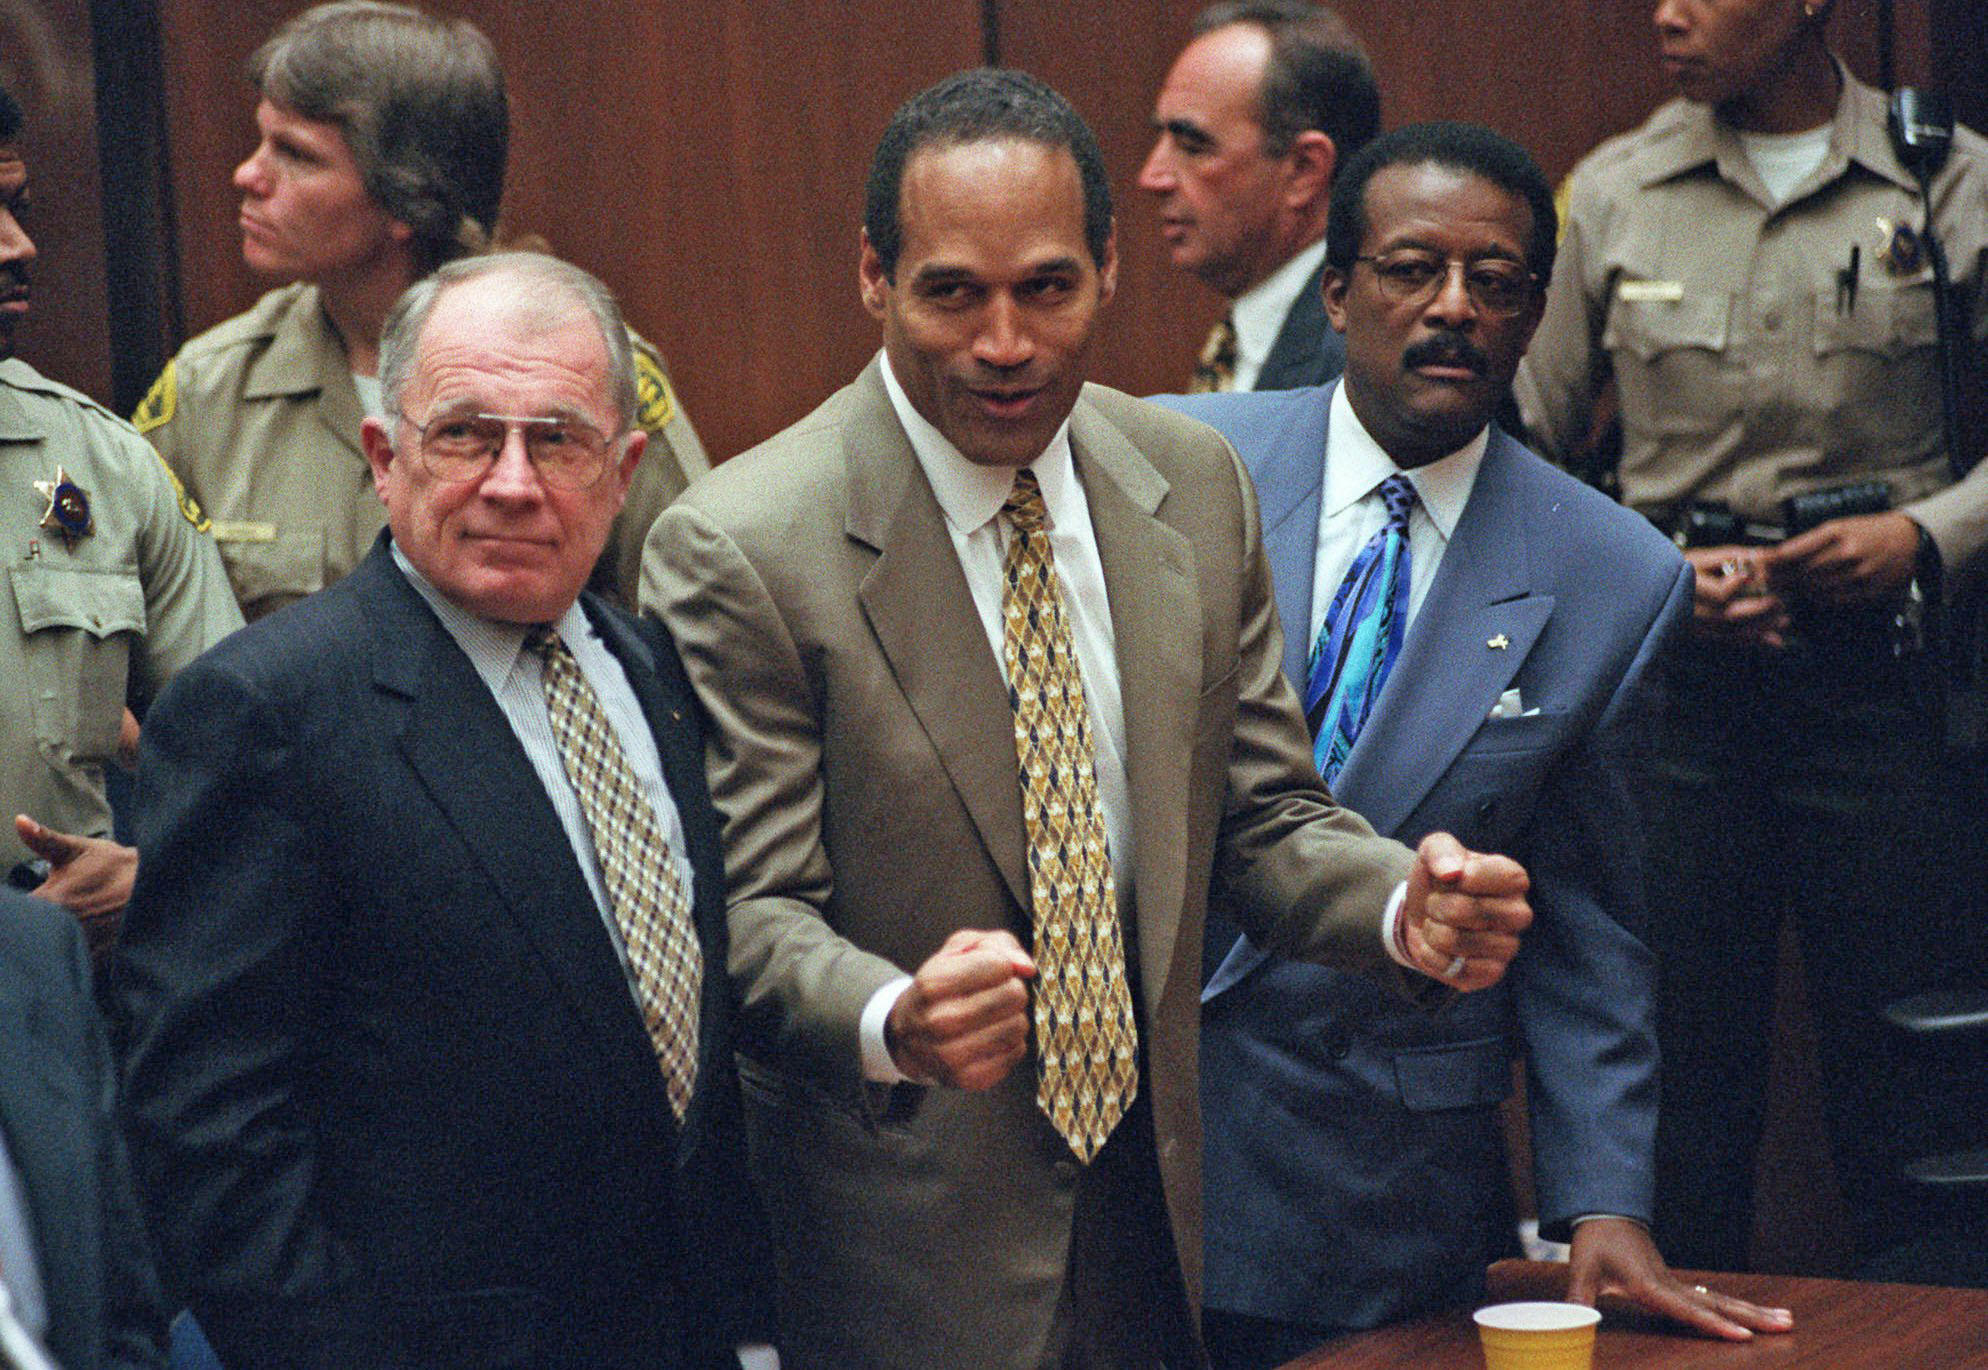 The moment O.J. Simpson, flanked by F. Lee Bailey, left and Johnnie Cochran, heard the verdict in his 1995 murder trial.